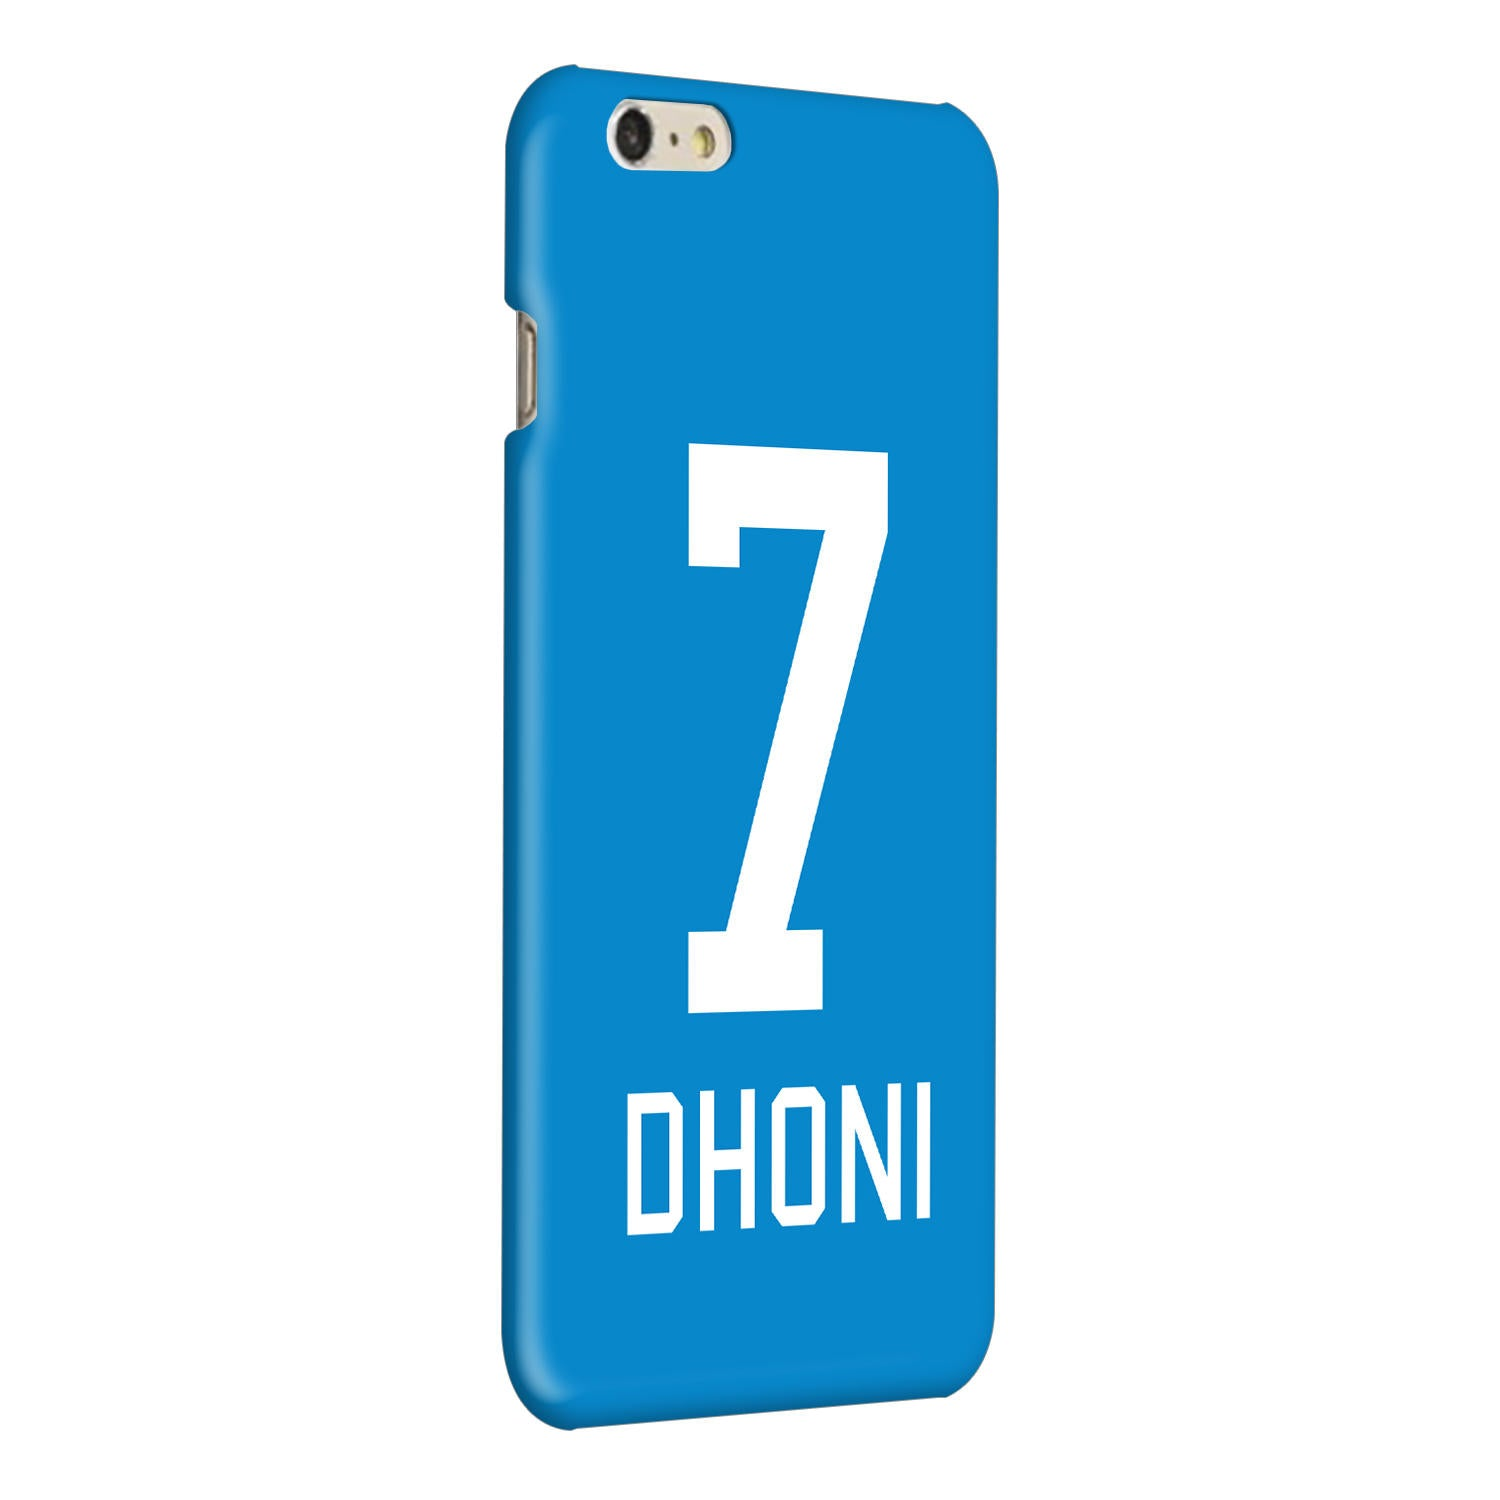 Dhoni Jersey iPhone 6 Plus Mobile Cover Case